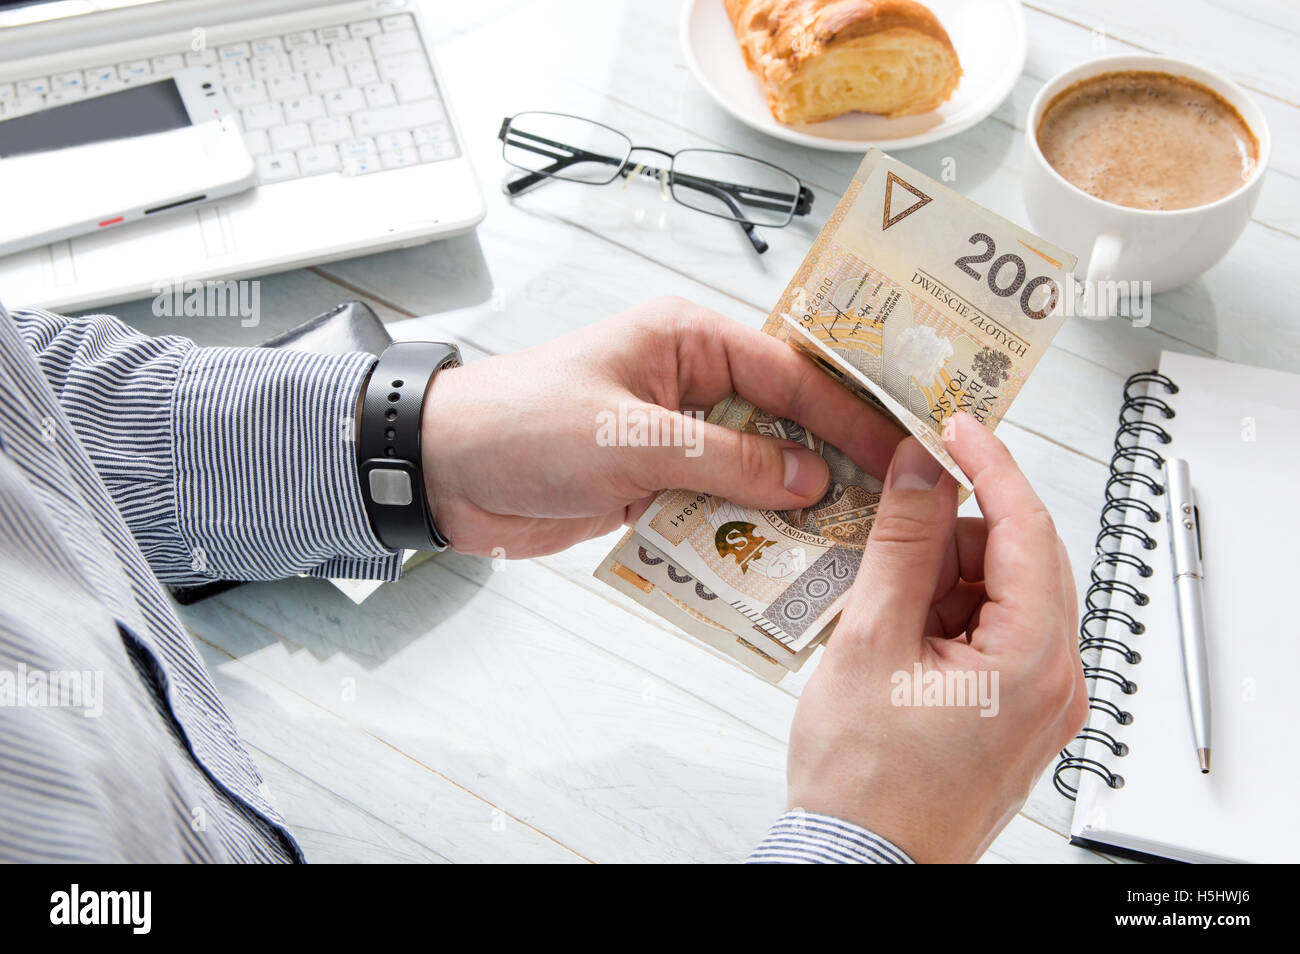 Businessman is counting money at breakfast in the work - Stock Image